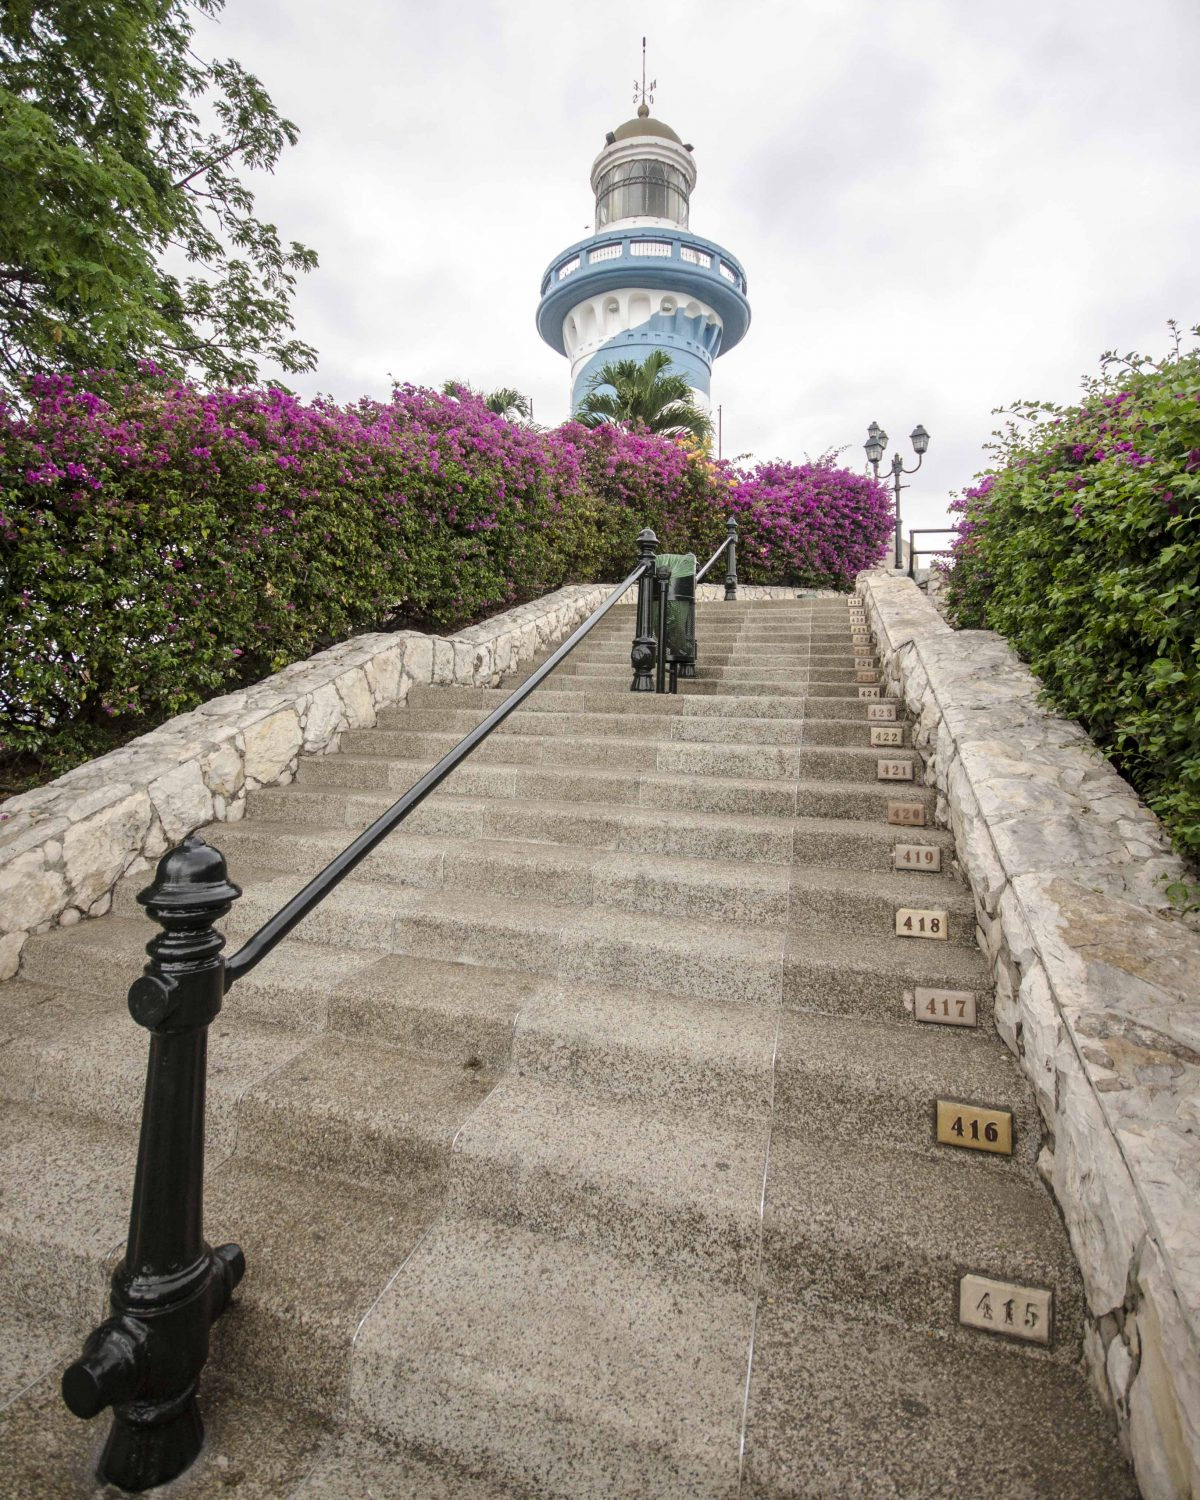 The Lighthouse in Guayaquil, Cerro Santa Ana